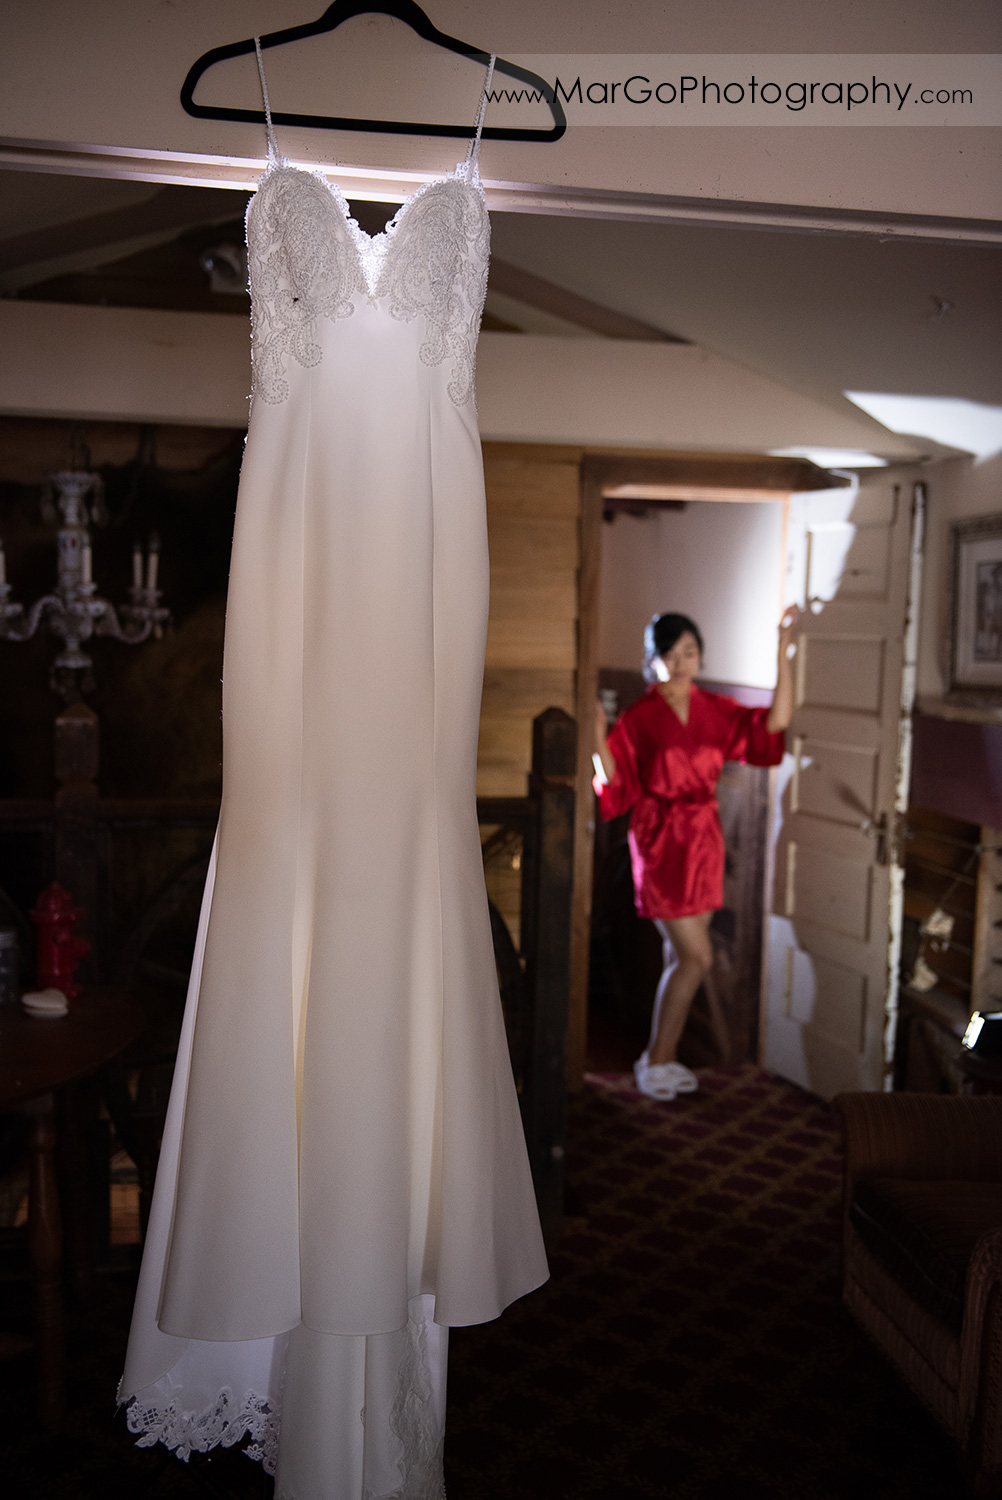 wedding dress hanging from the ceiling with bride in red robe in background at Long Branch Saloon & Farms in Half Moon Bay